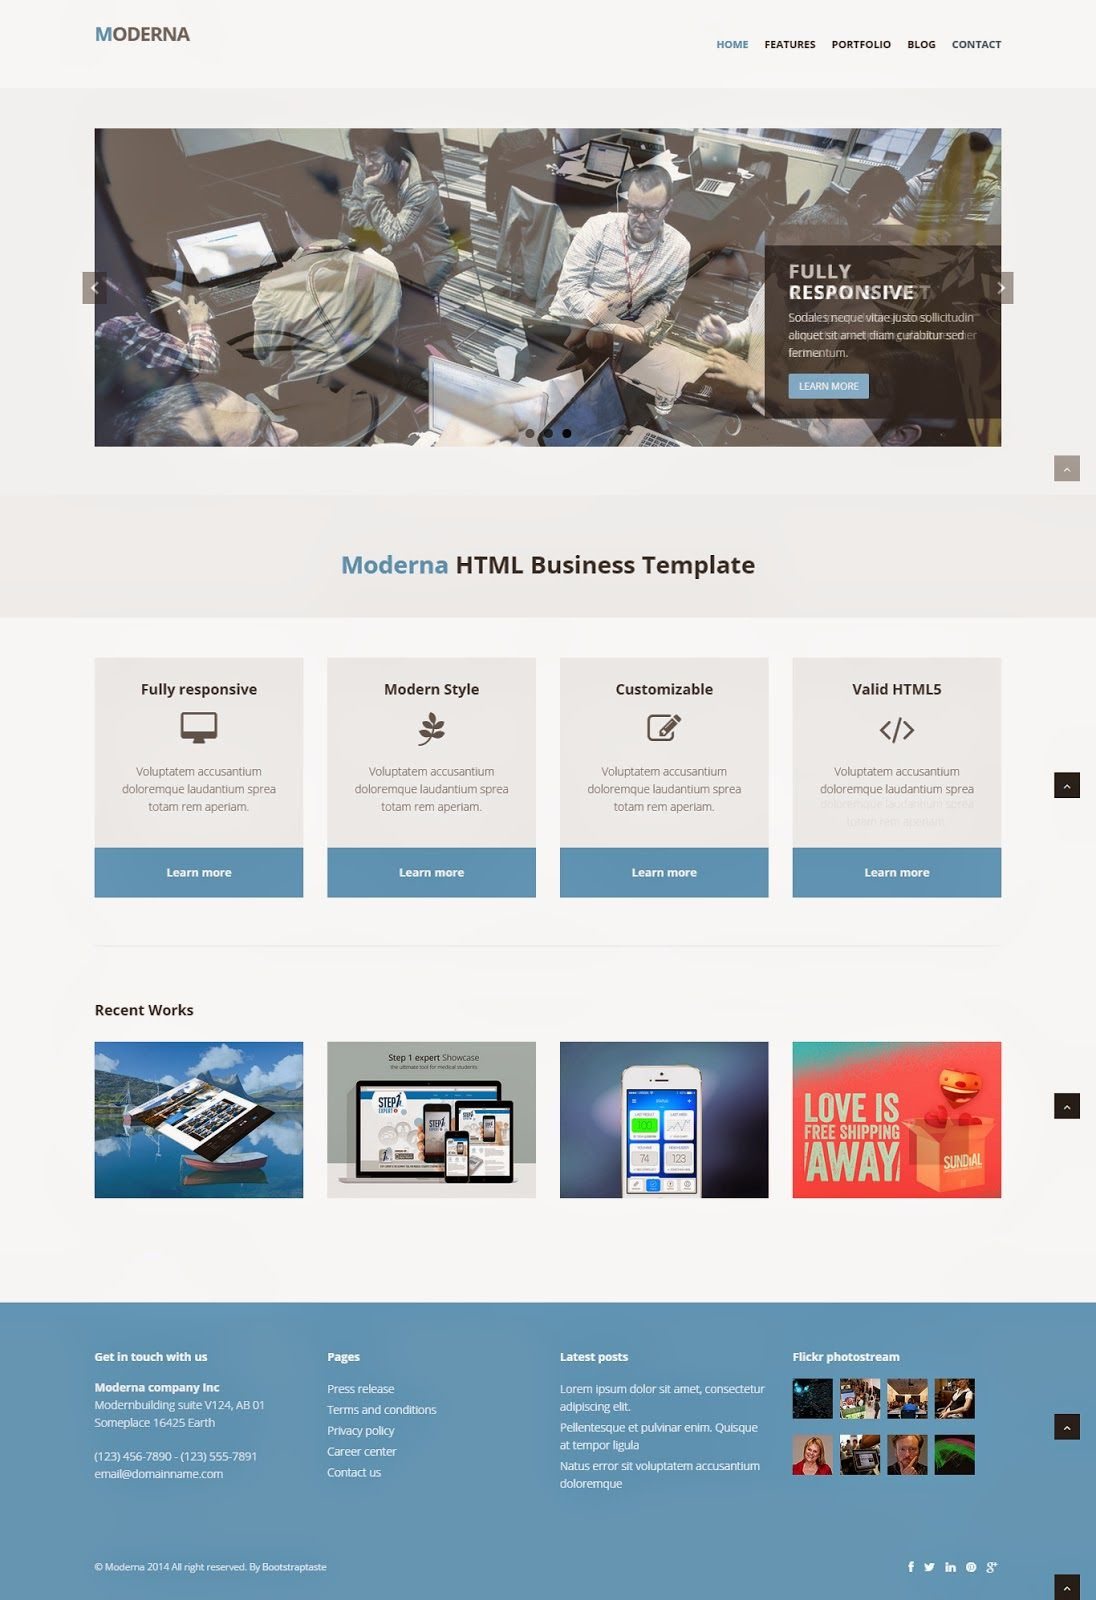 009 Frightening Free Website Template Download Html And Cs Jquery For Ecommerce Concept Full